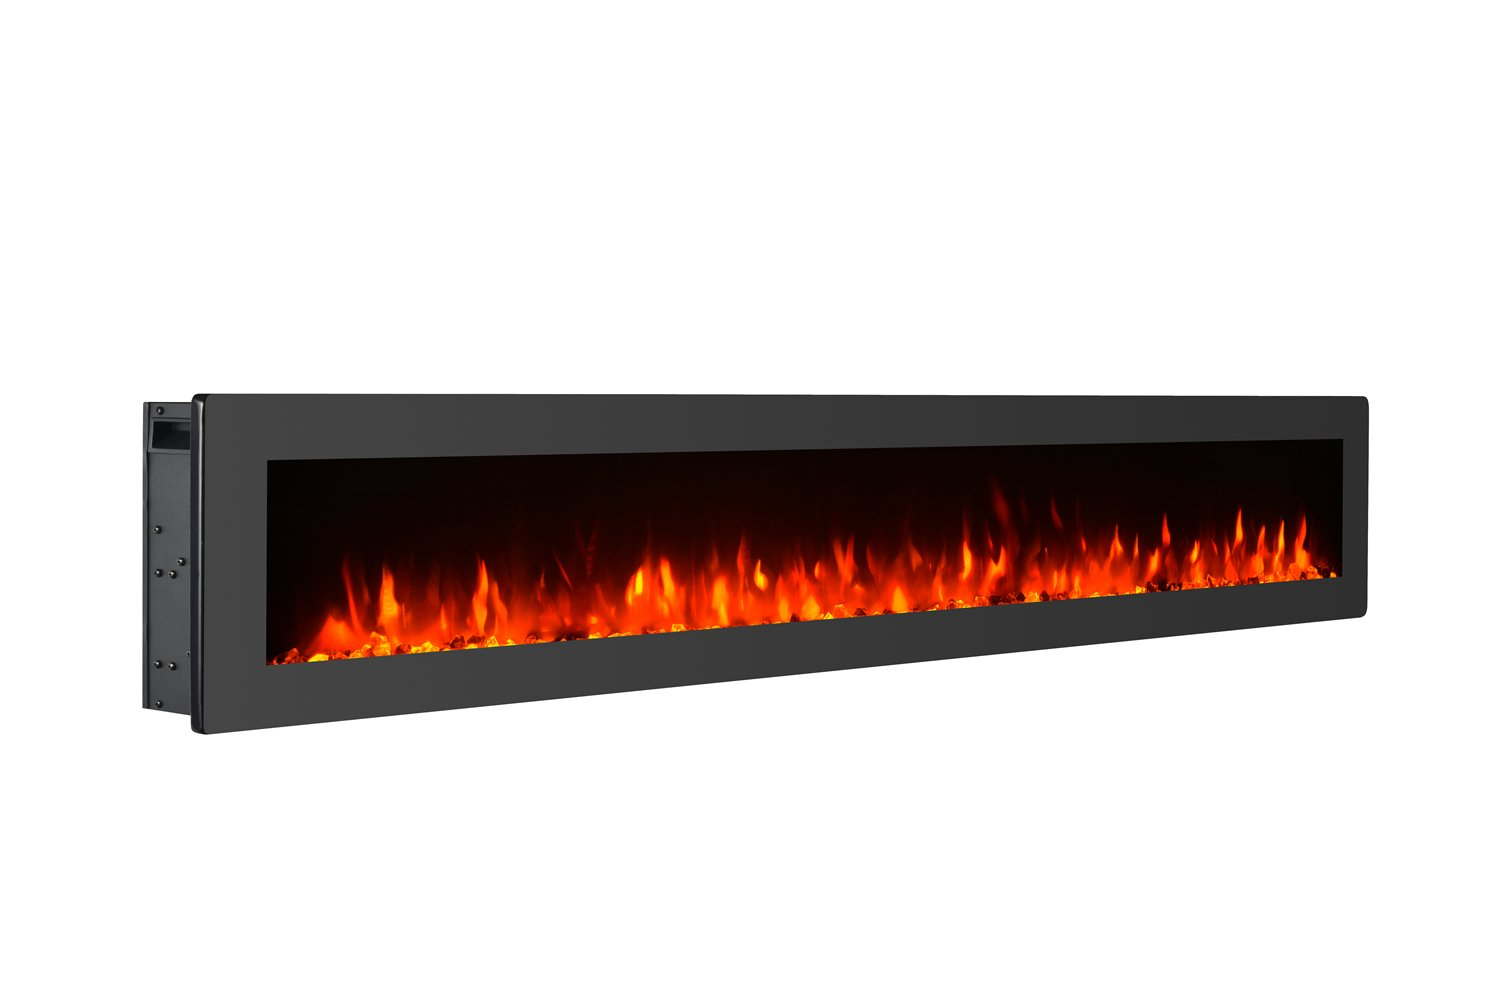 "Amazon.com: GMHome 60"" Electric Fireplace Wall Mounted Heater Freestanding  Fireplace Crystal Stone Flame Effect 9 Changeable Flame Color Fireplace, ..."